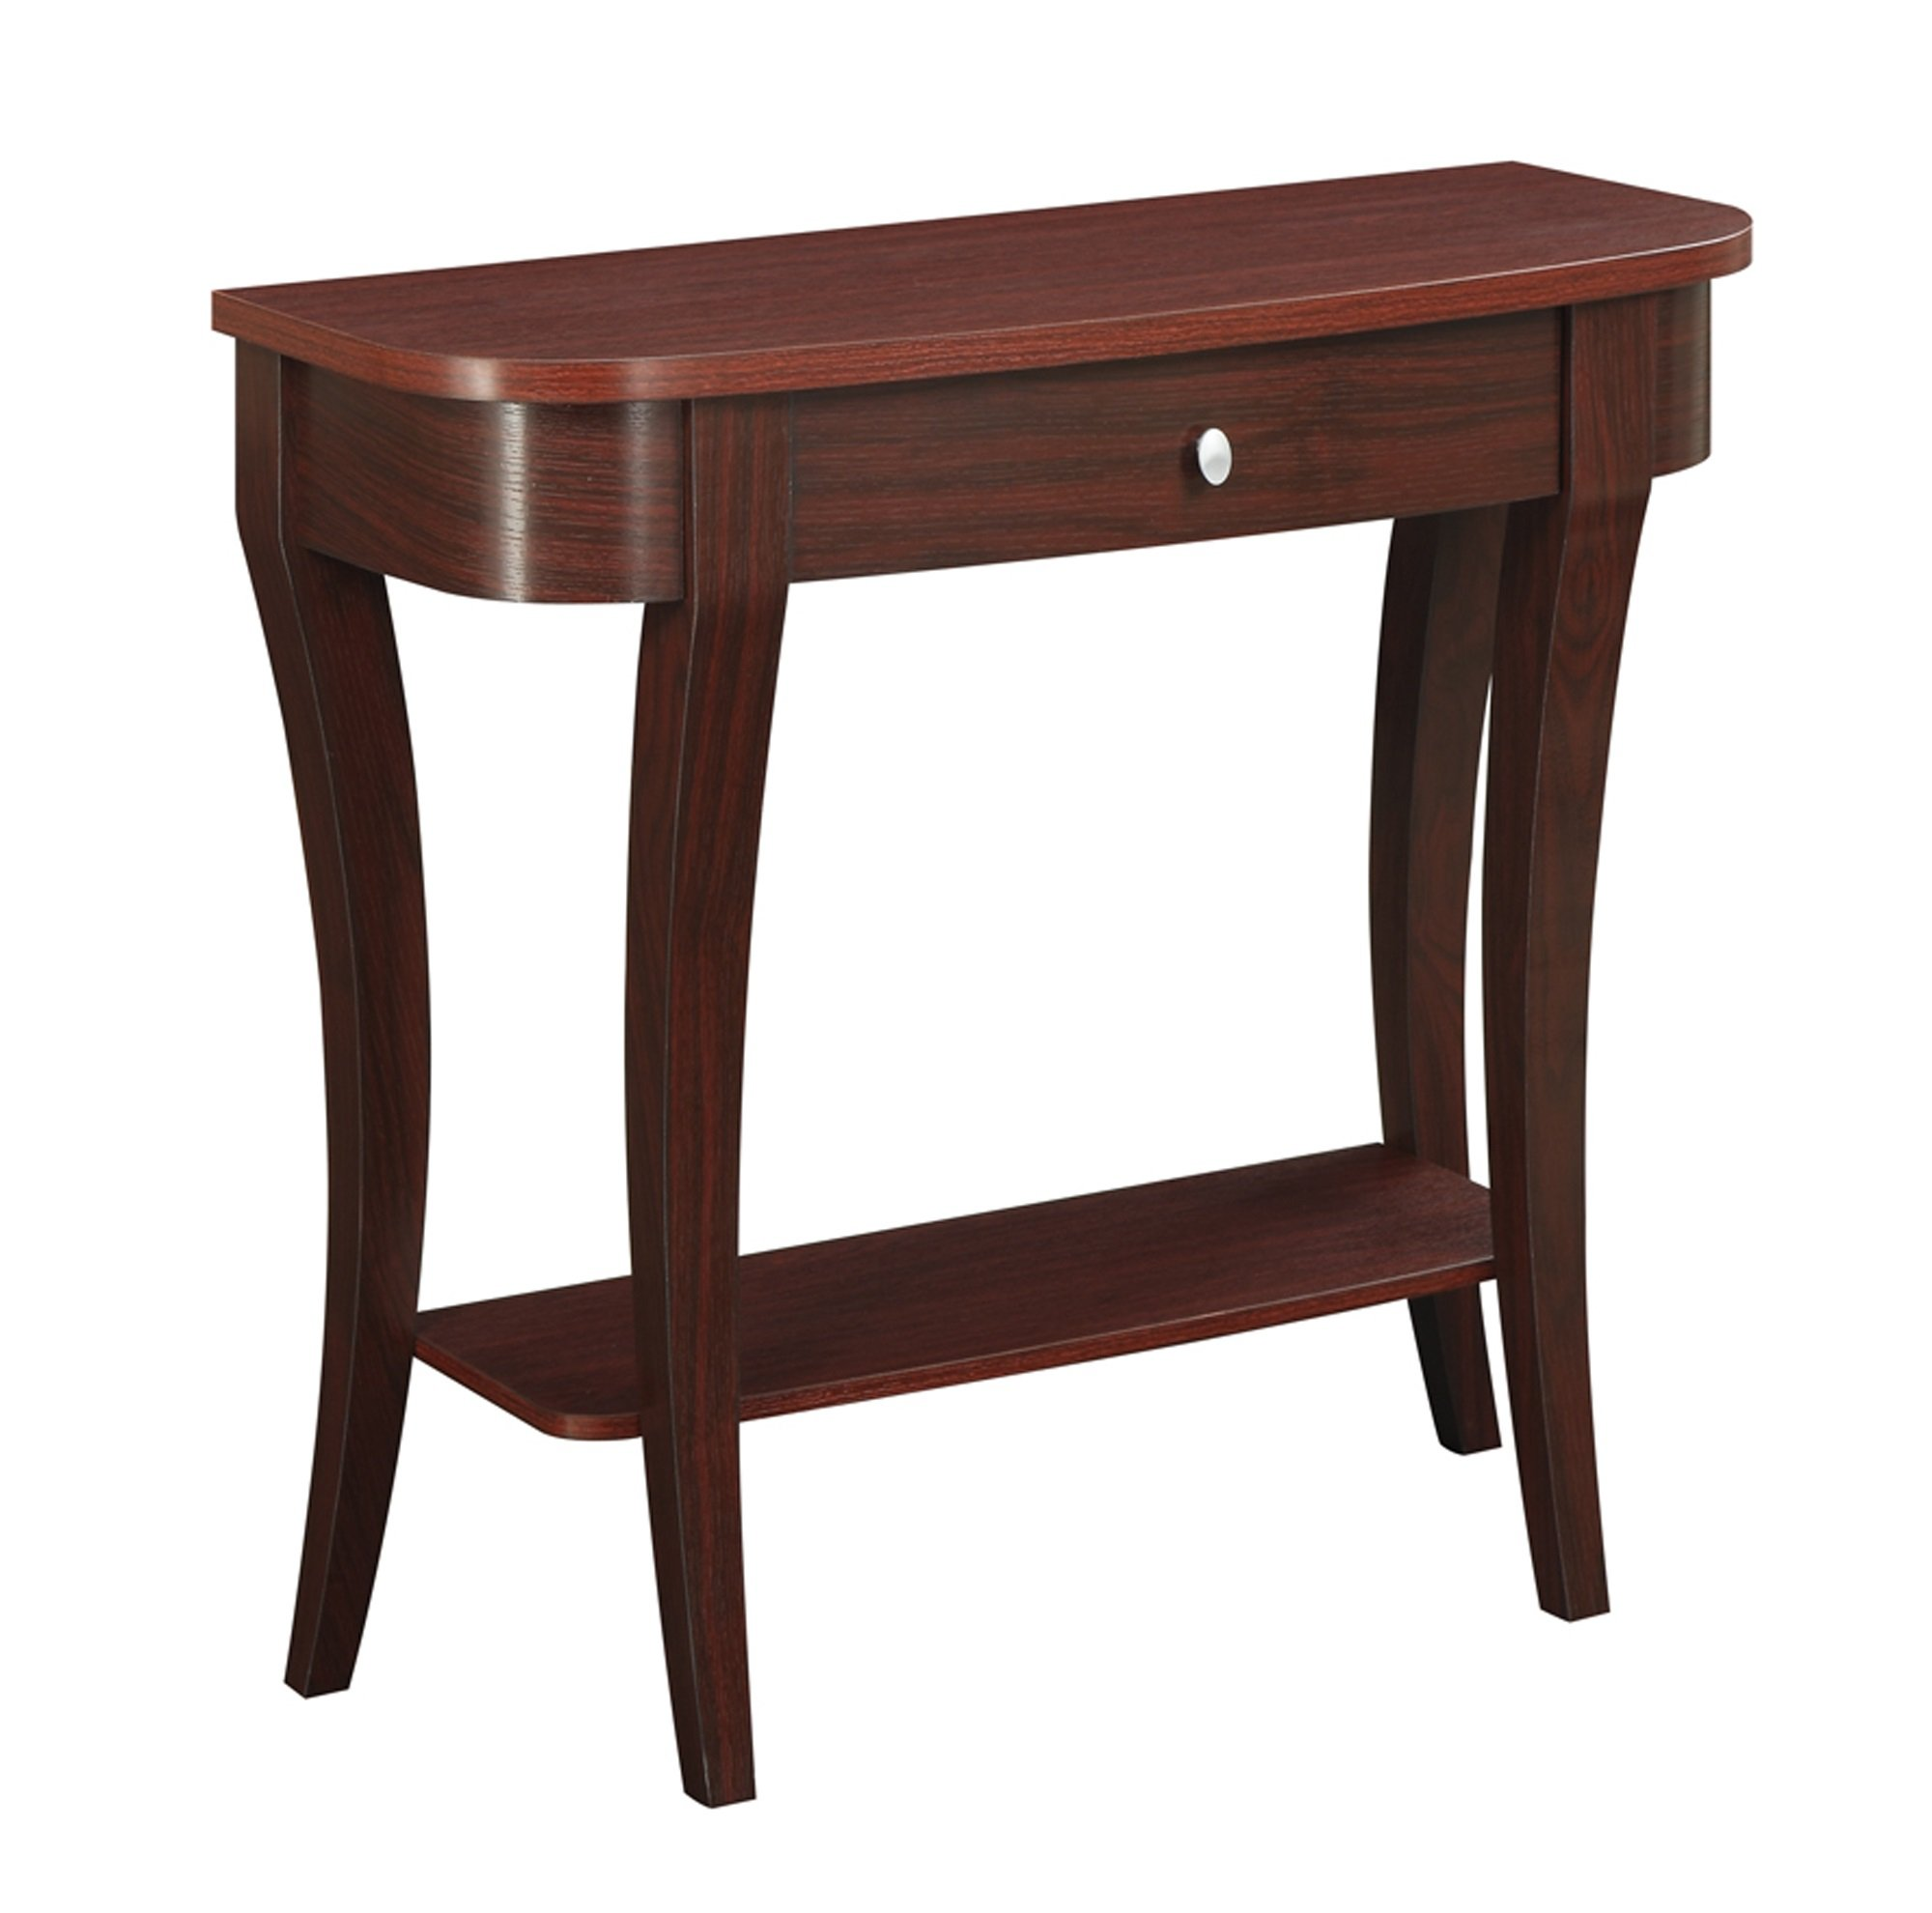 Convenience Concepts Modern Newport Console Table, Mahogany by Convenience Concepts